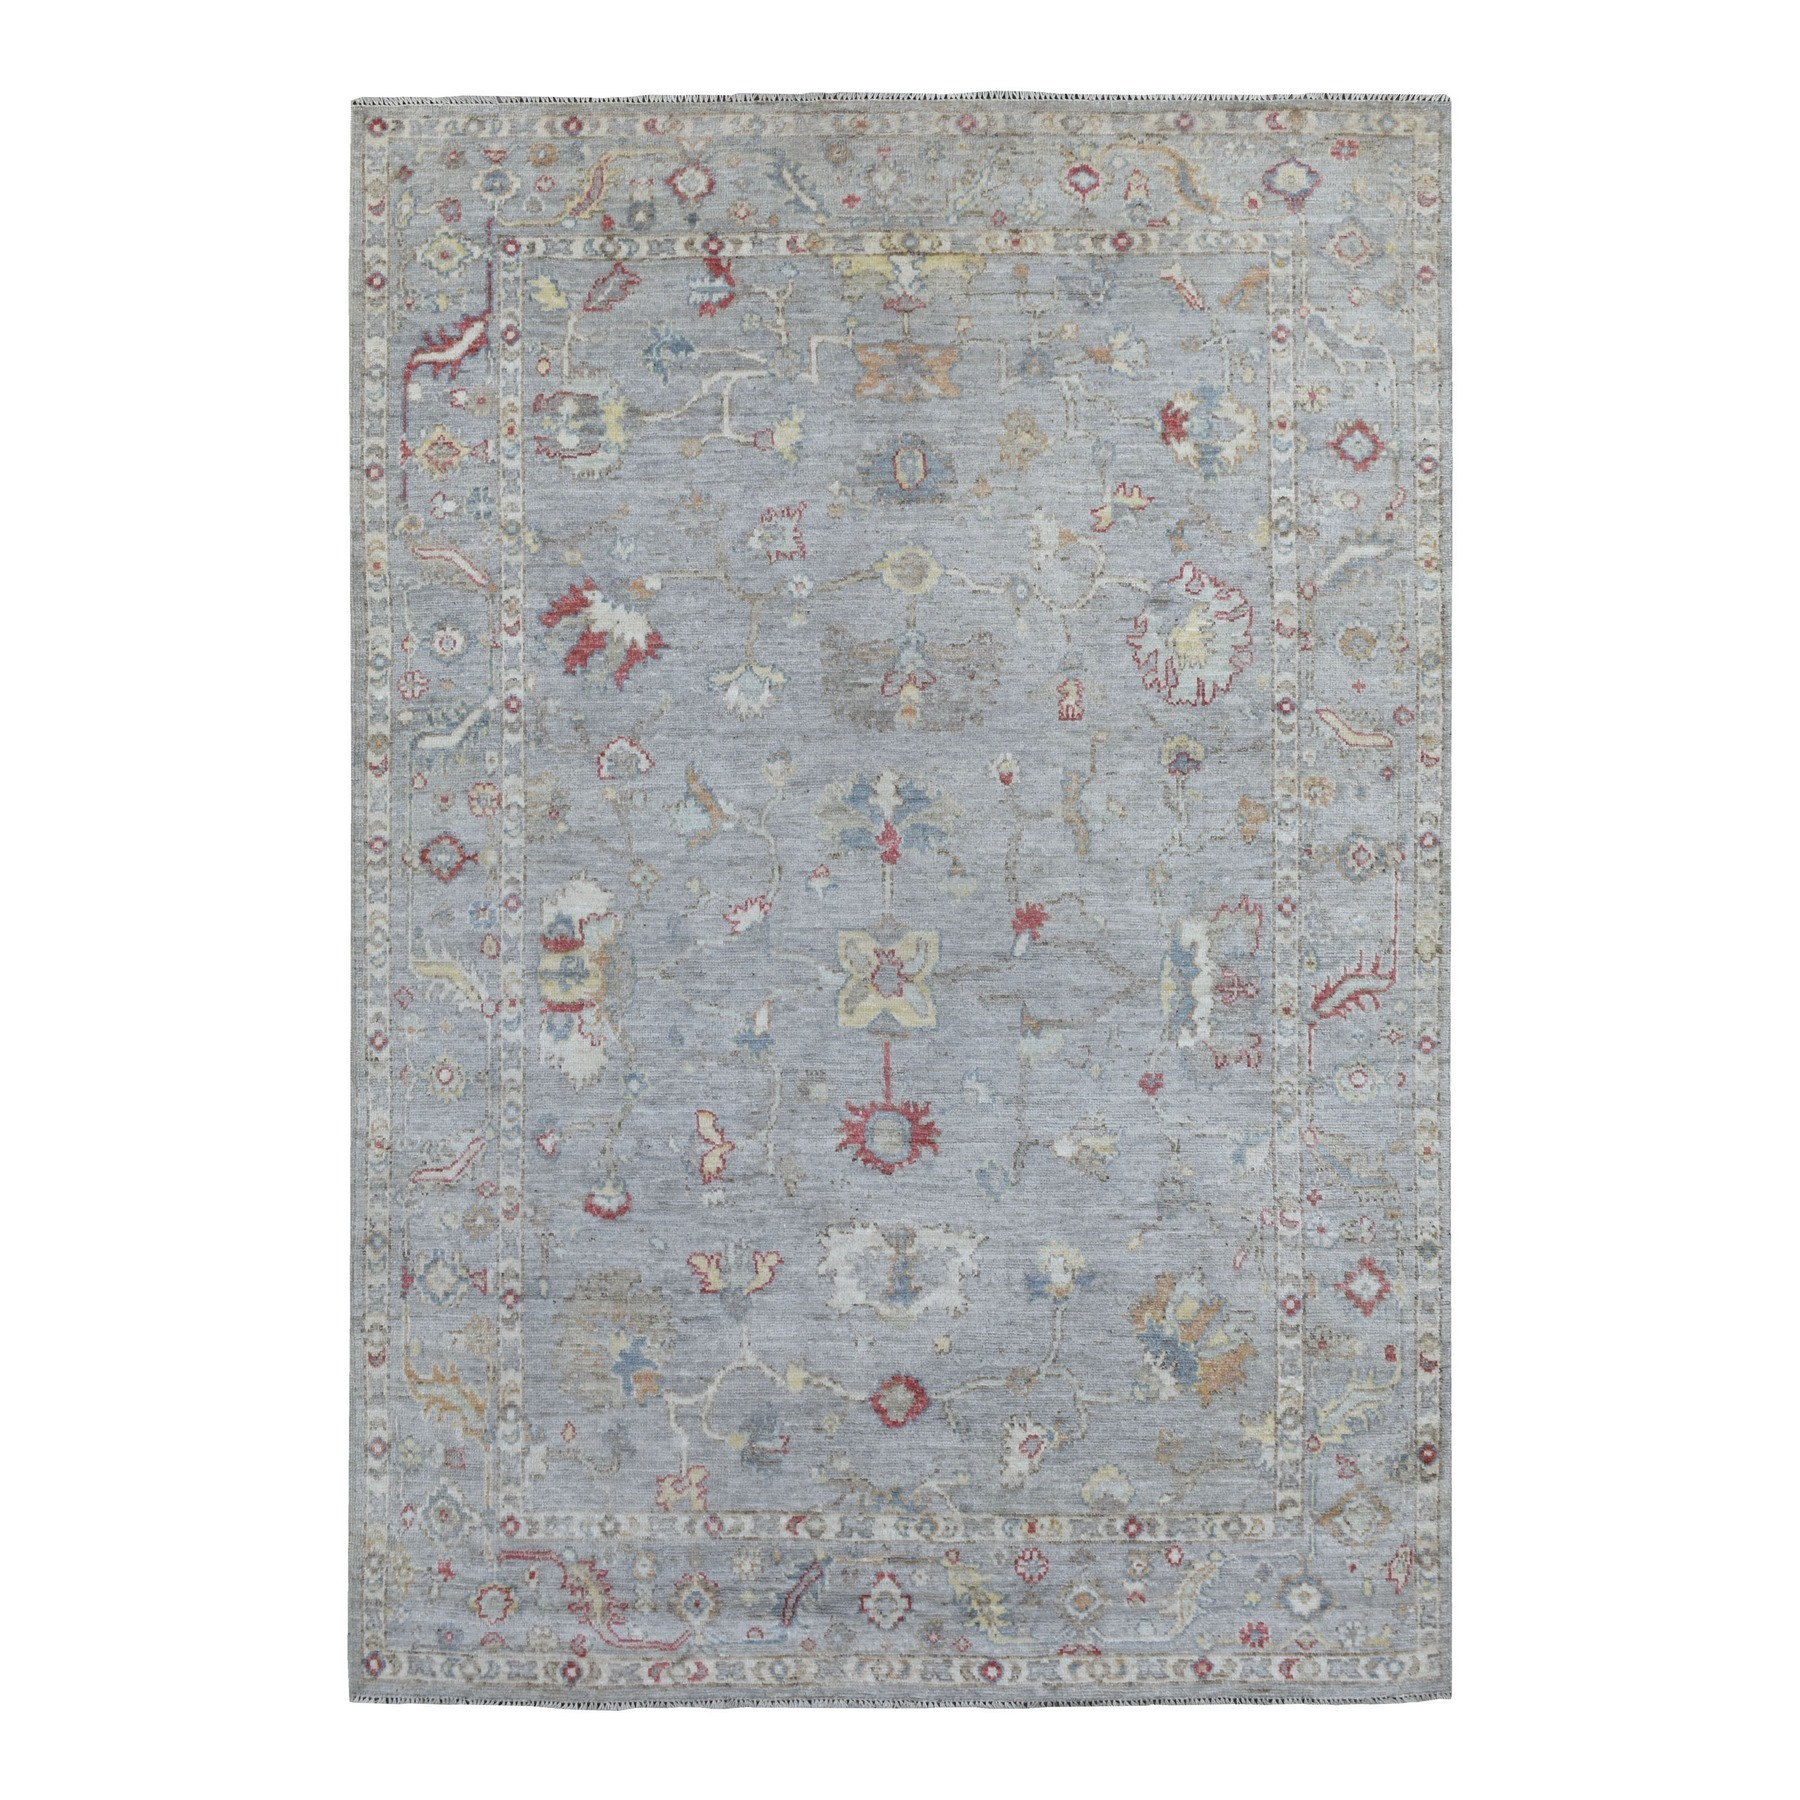 "6'x8'8"" Gray Angora Oushak With Little Motifs Hand Woven Natural Wool Oriental Rug"